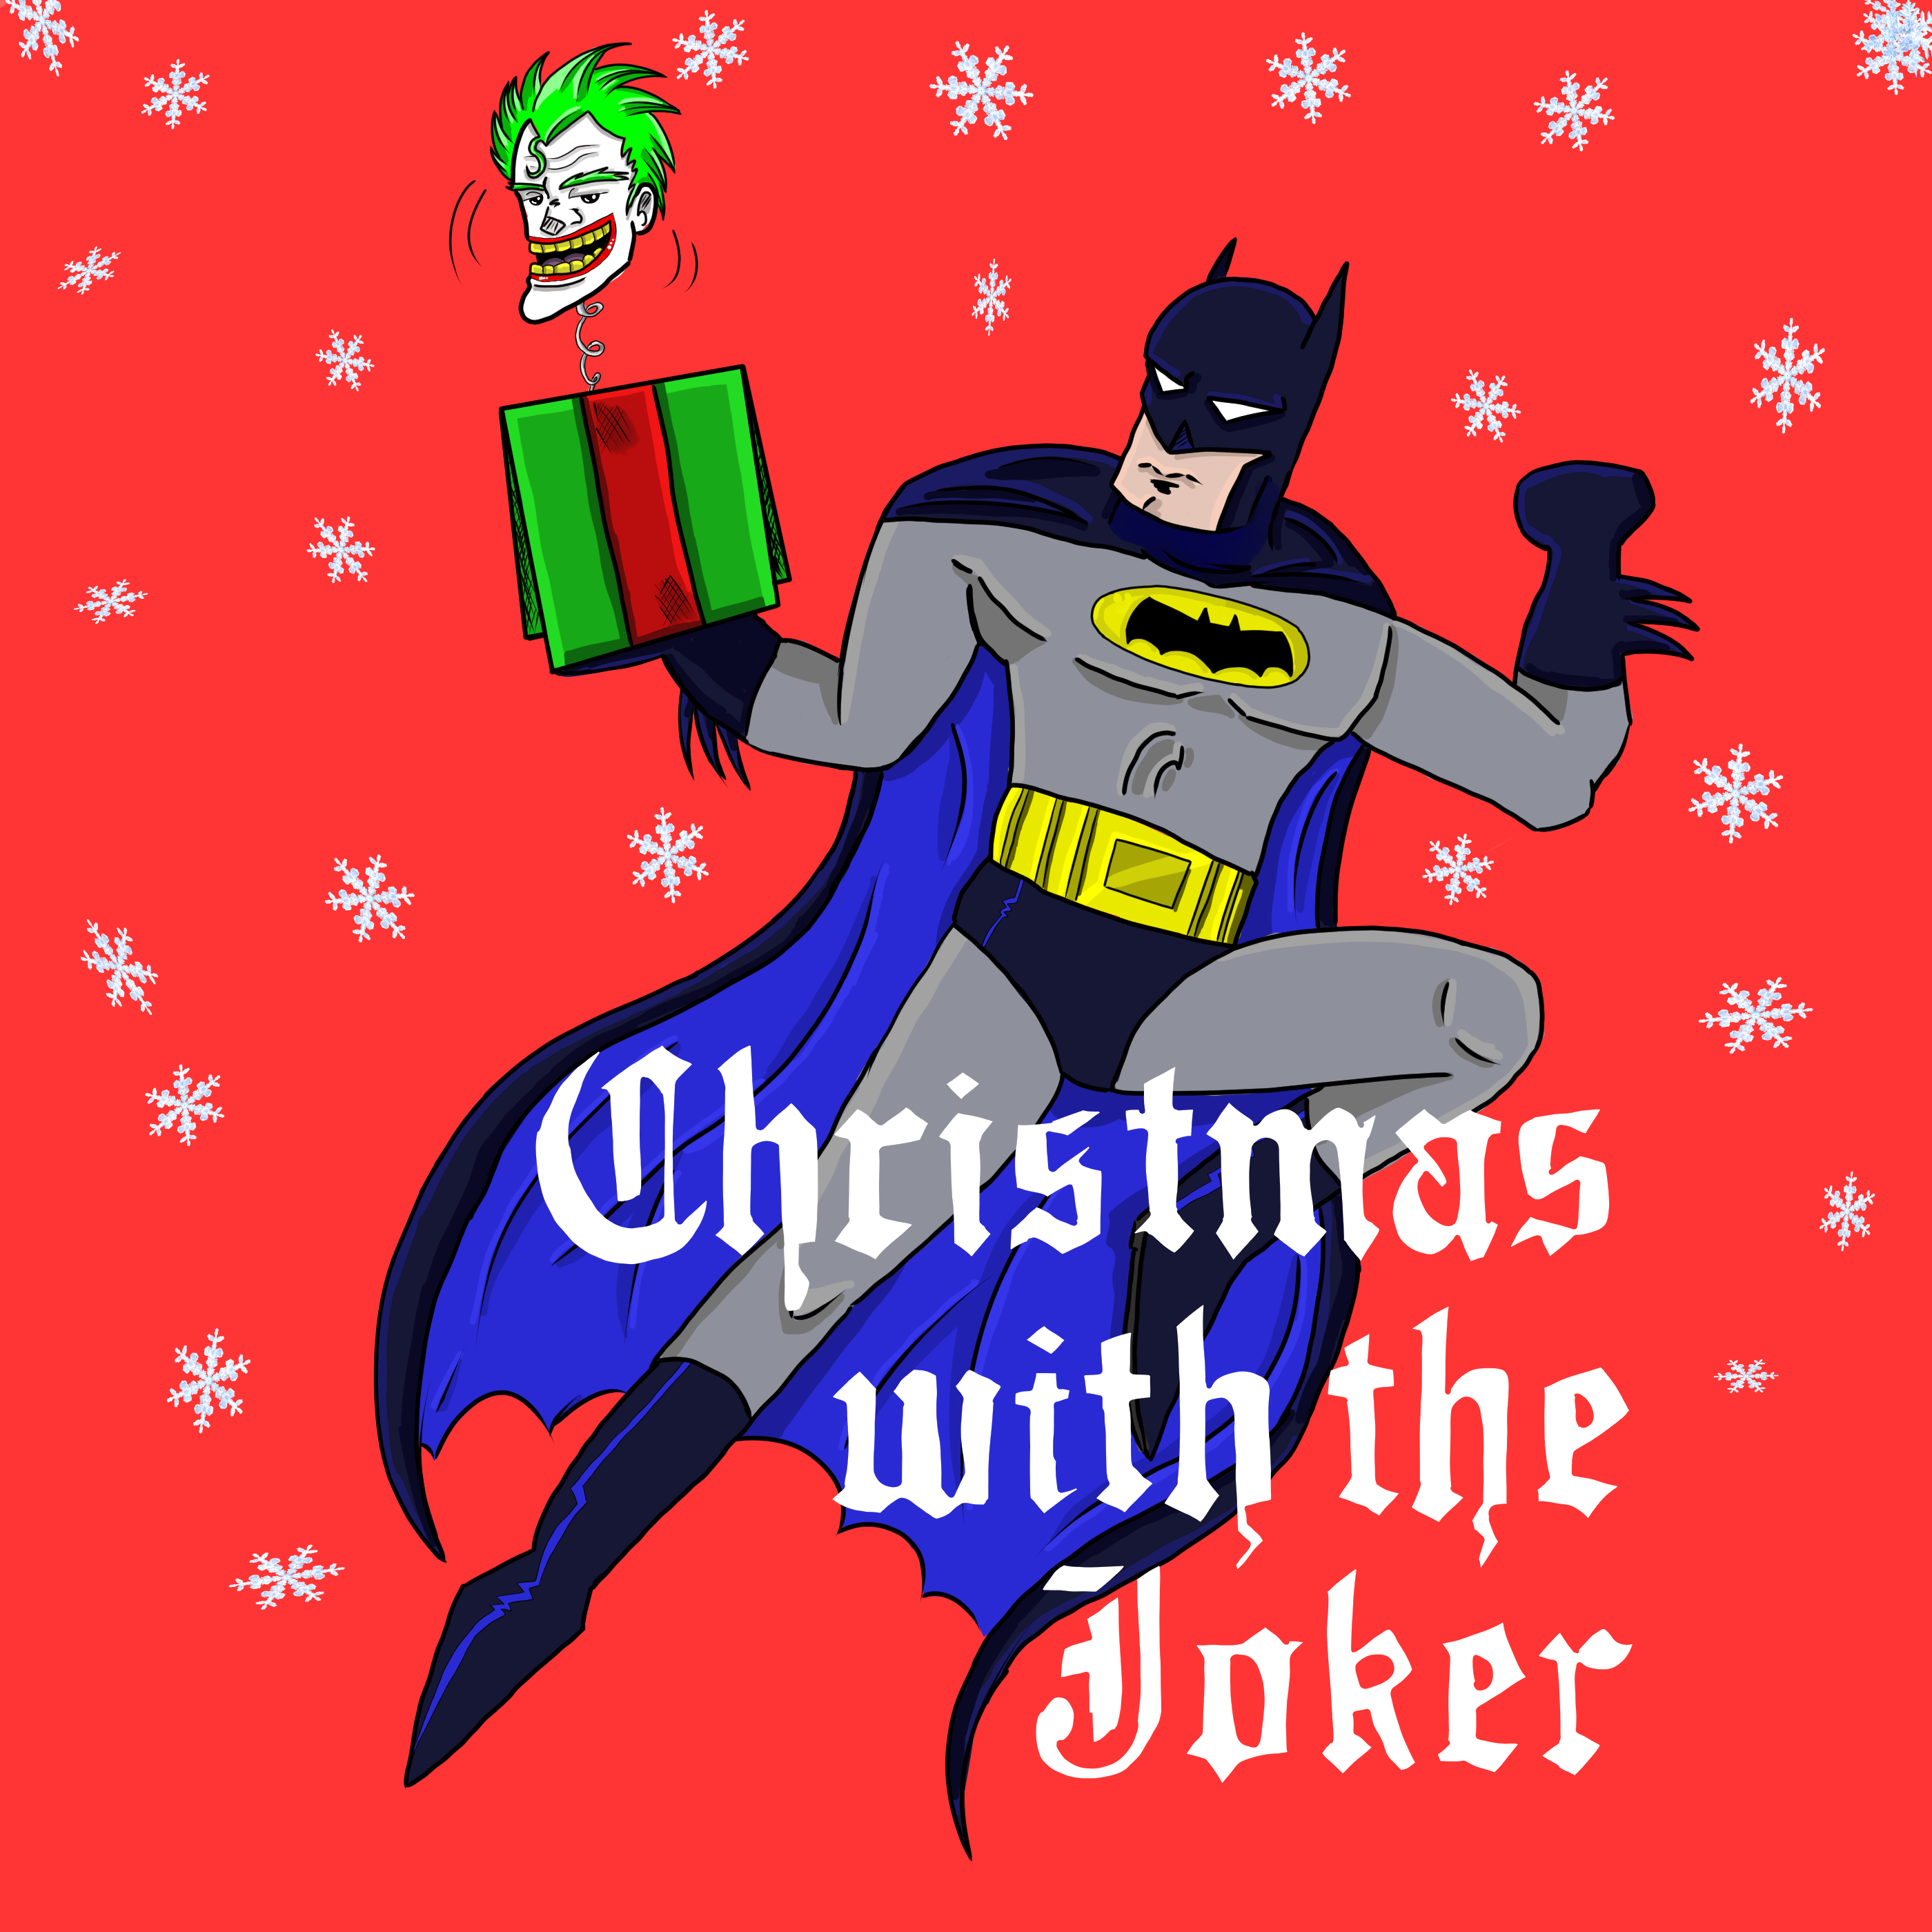 Batman: Christmas with the Joker by SketchitPlus on Newgrounds